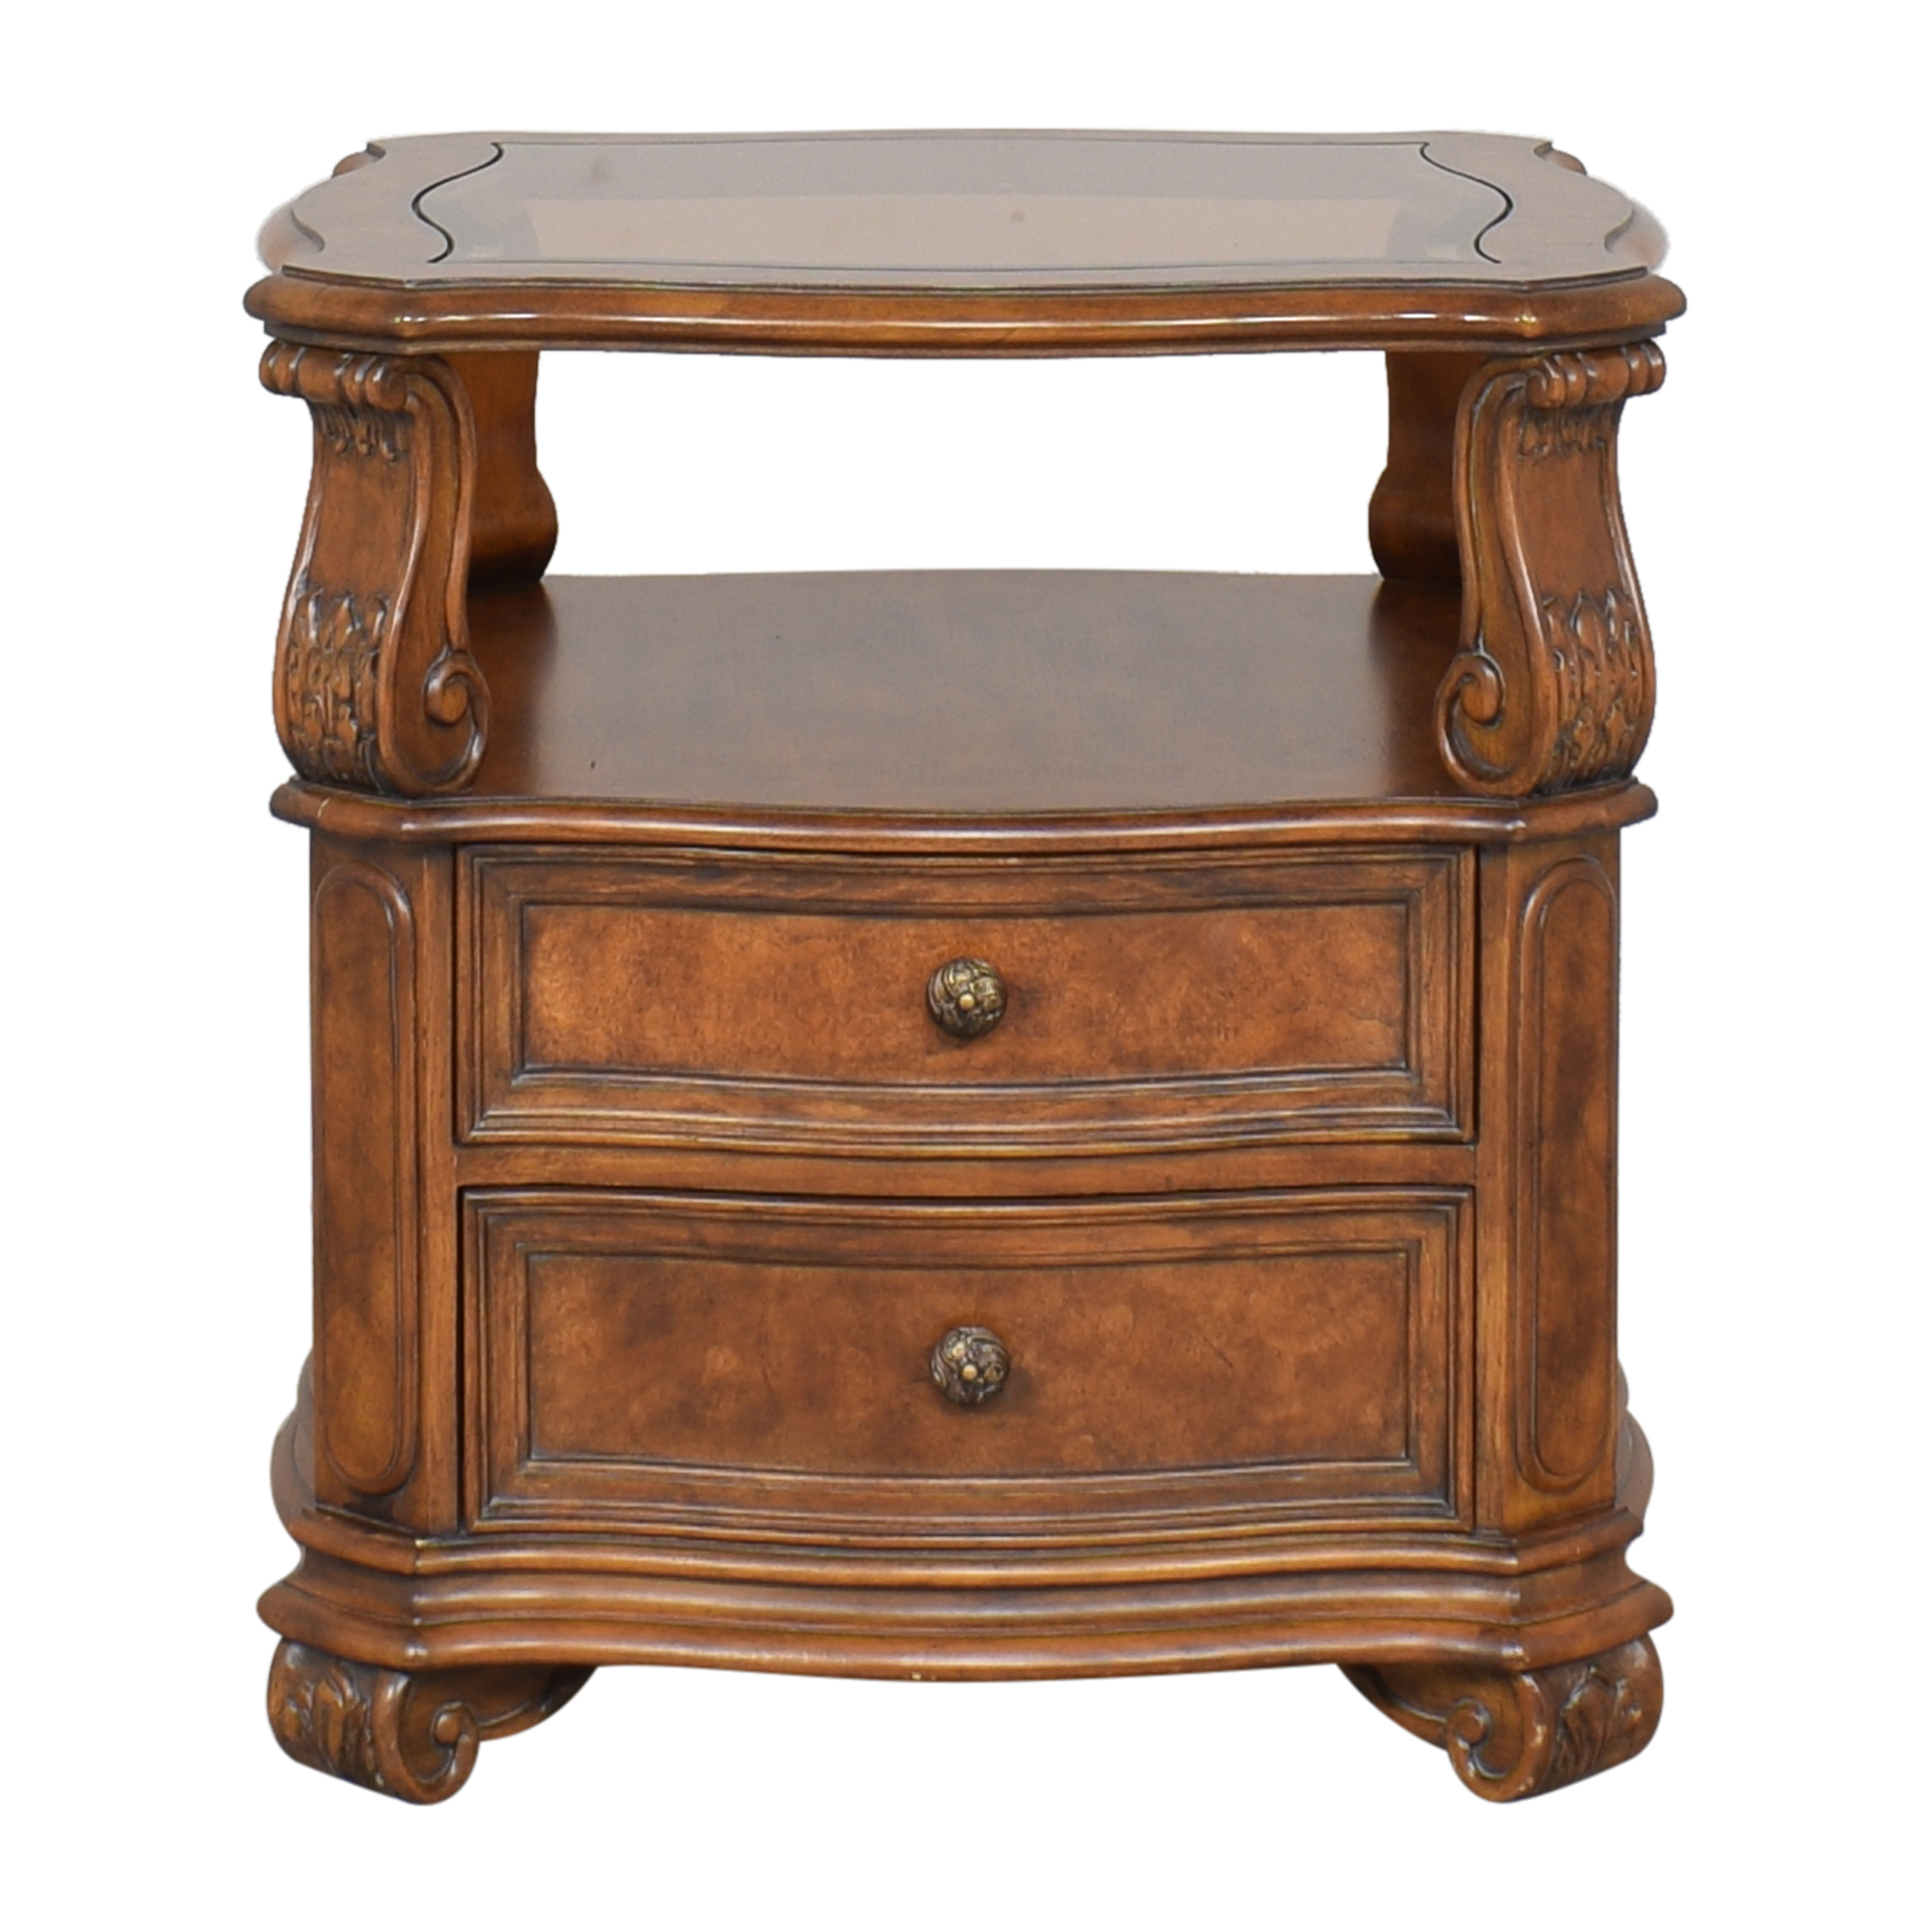 Drexel Heritage Drexel Heritage Carved Nightstand second hand